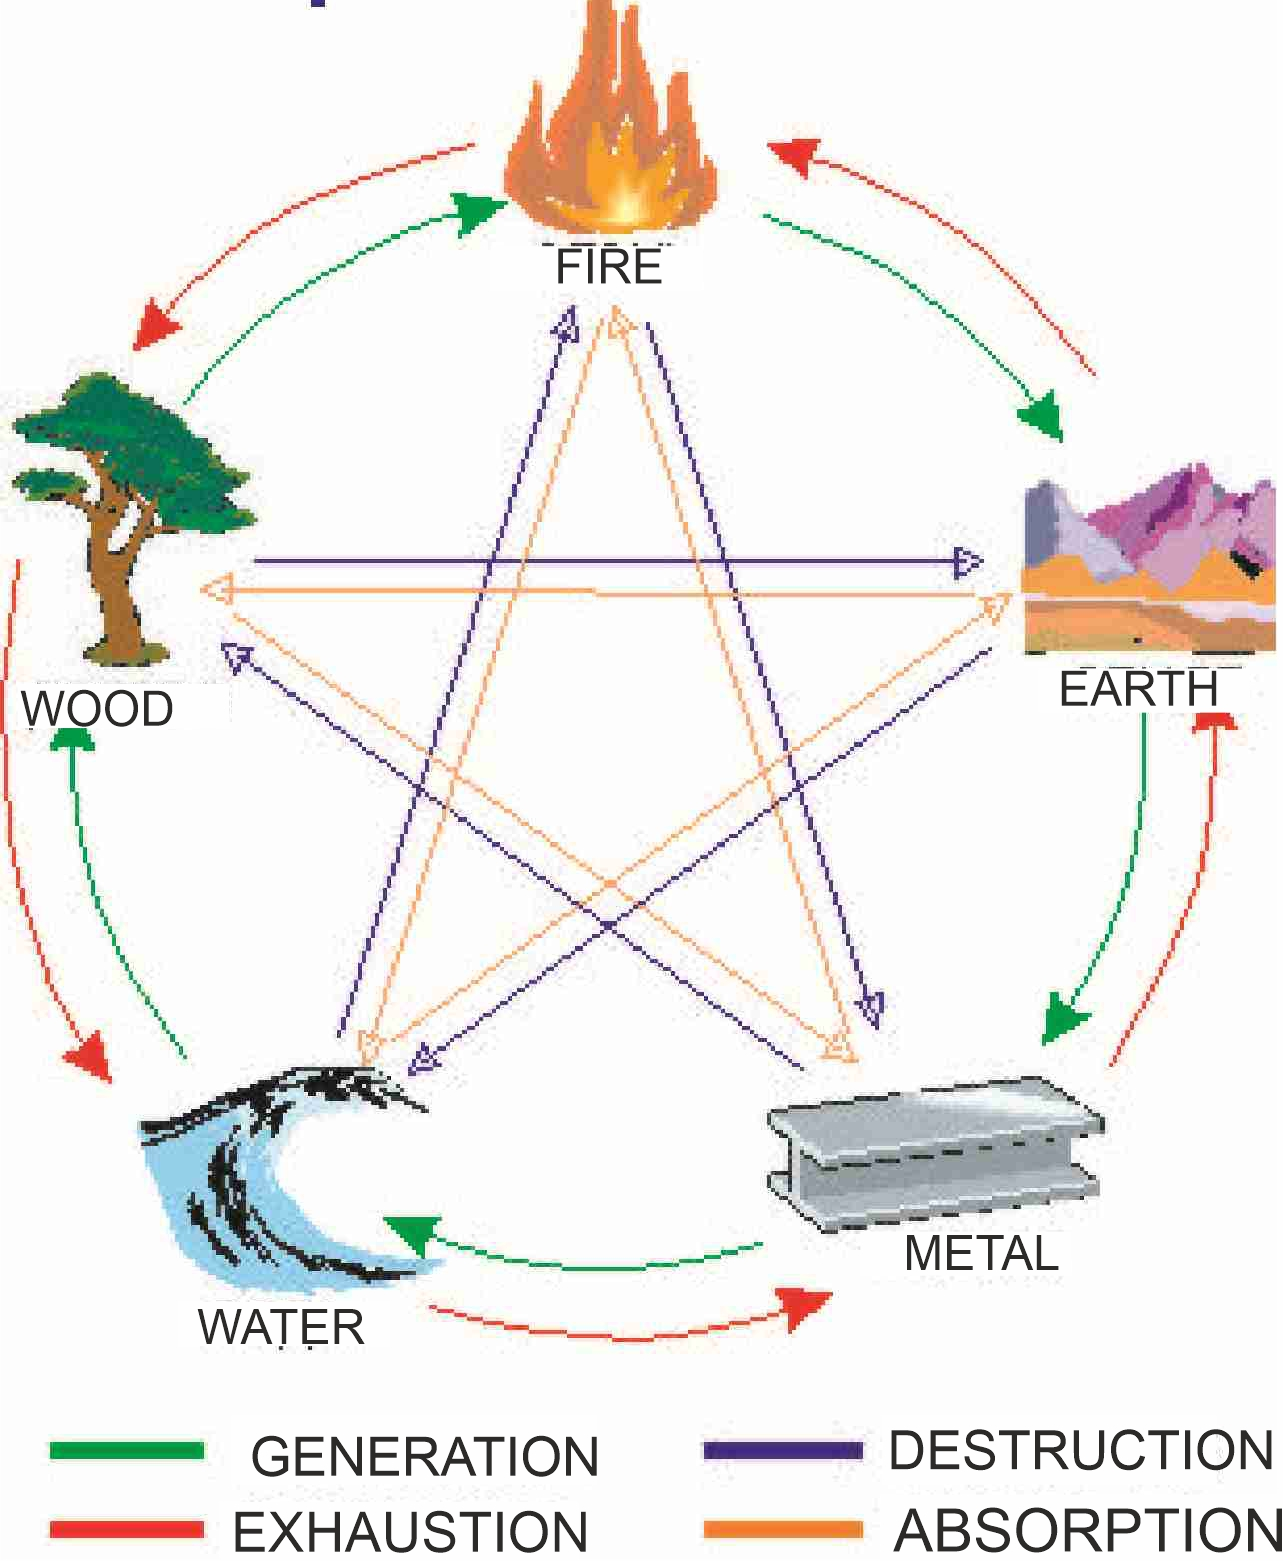 MULTI-DIMENSIONAL RELATIONS BETWEEN PRIMARY ELEMENTS